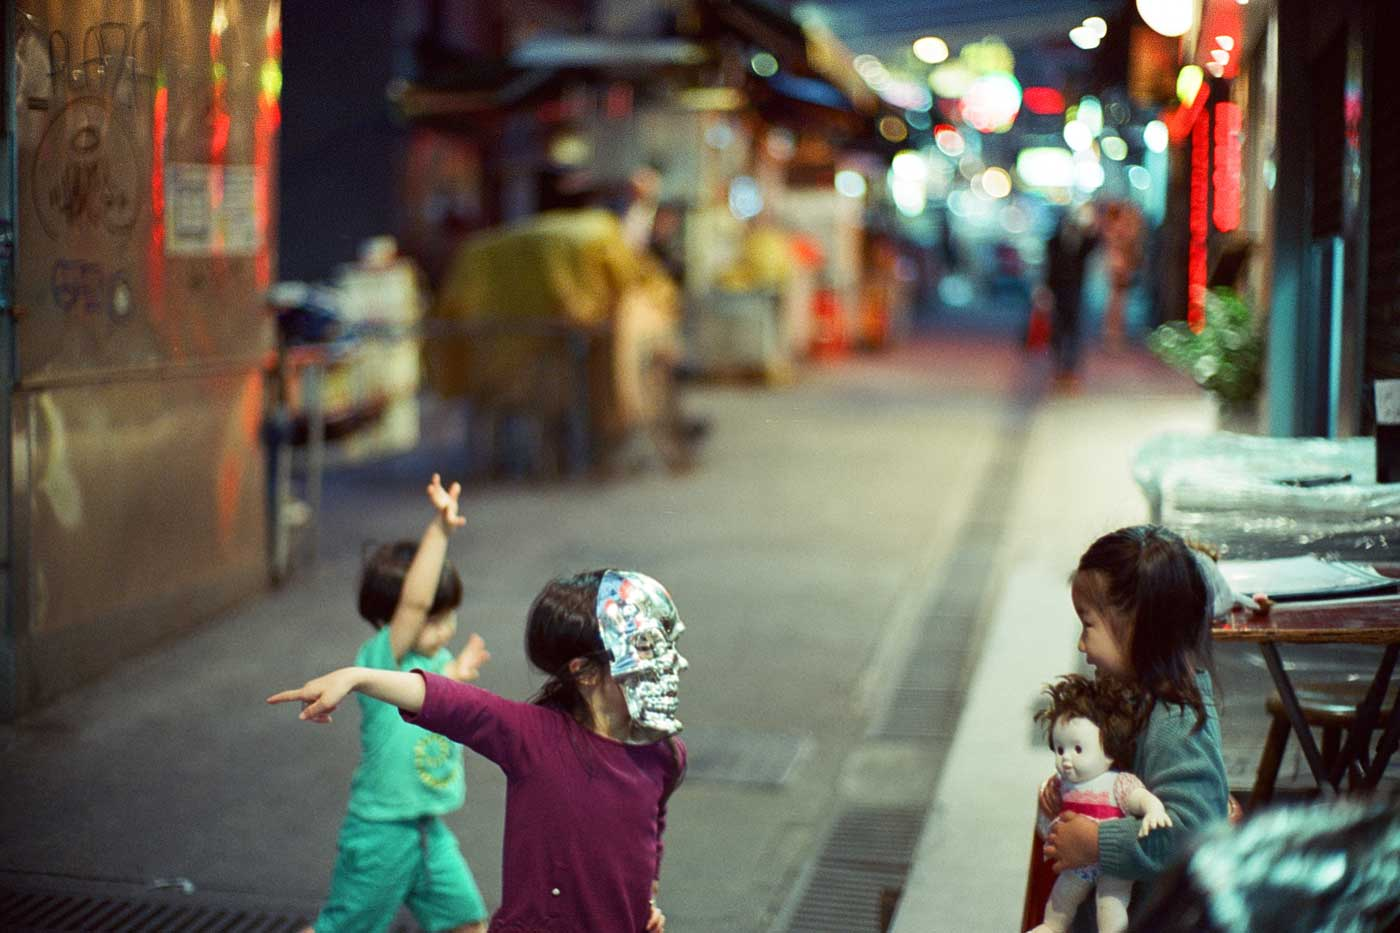 analog-film-review-kodak-vision3-vision-3-5219-7219-500T-800T-tungsten-photography-hk-night-central-near-kids-playing-skeleton-mask-bokeh-creamy-noctilux-50mm-f1.0-f1-e58-v1